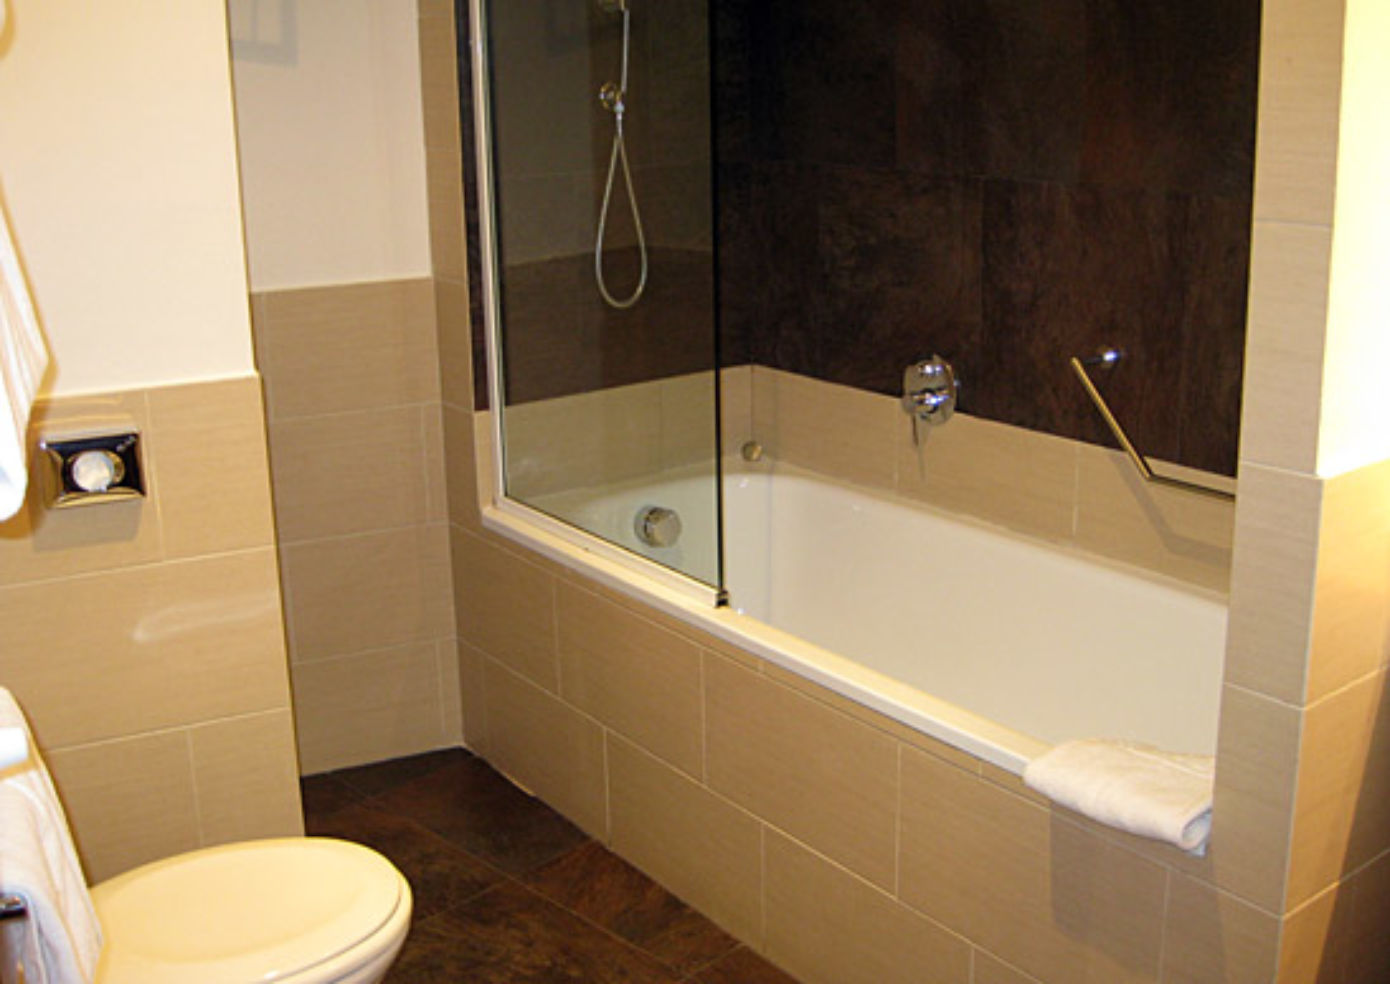 Half the rooms at Hotel Re di Roma have tubs big enough for a long soak.